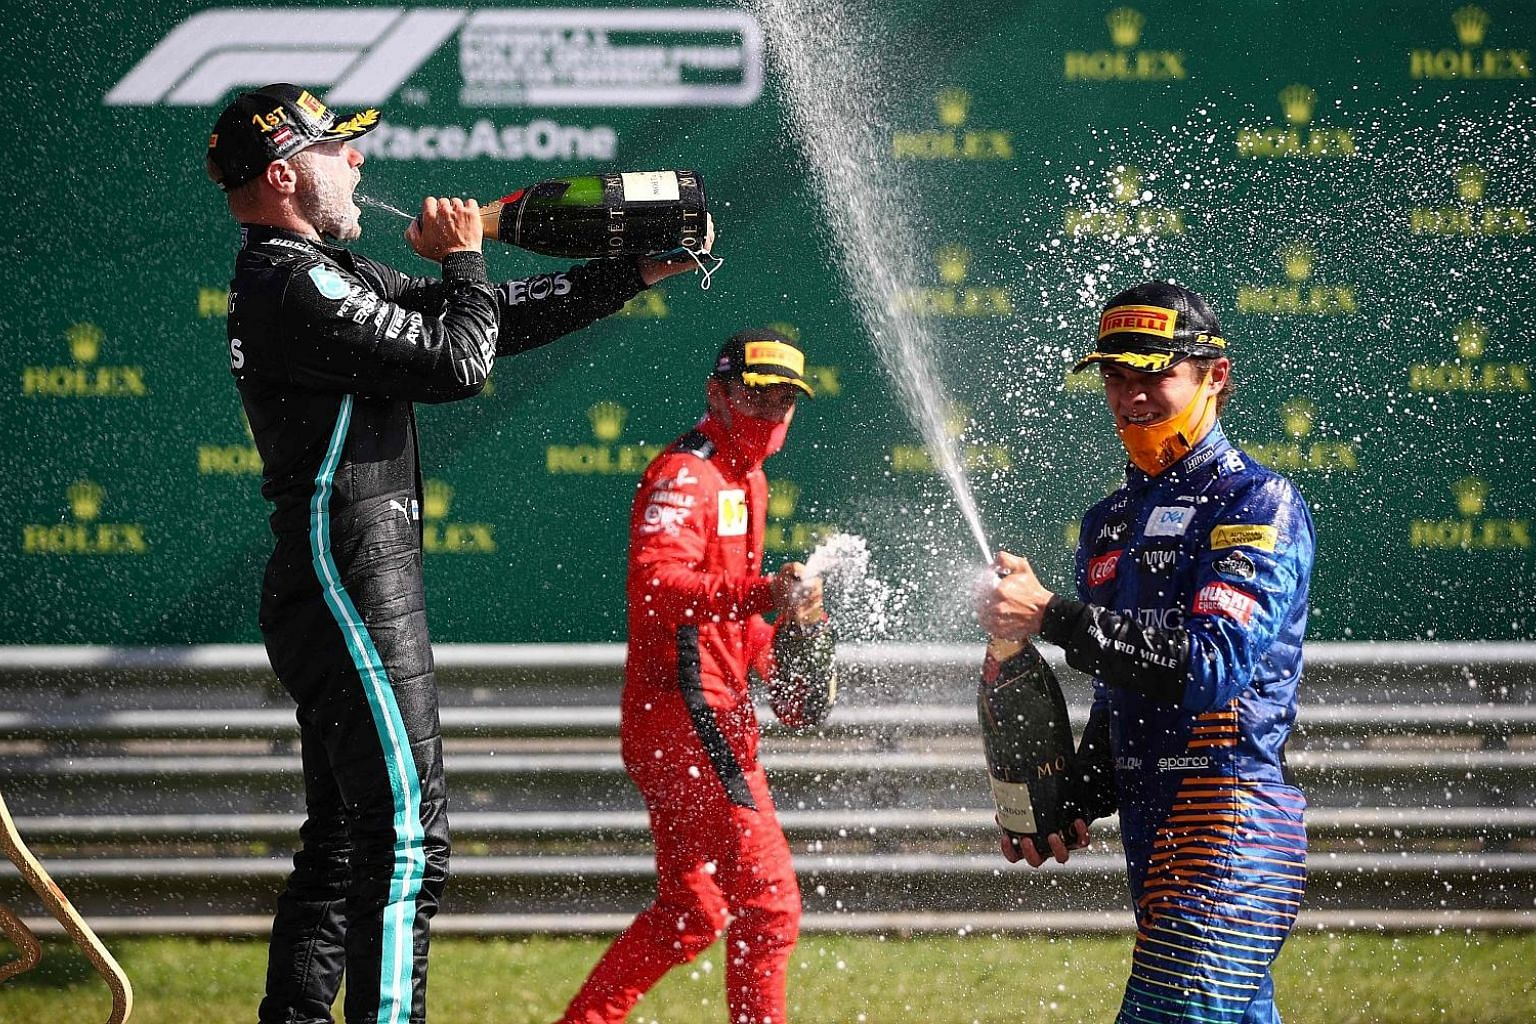 From left: Valtteri Bottas, Charles Leclerc and Lando Norris allowing themselves some liberal celebration with champagne after finishing on the podium in F1's delayed season-opener in Austria.